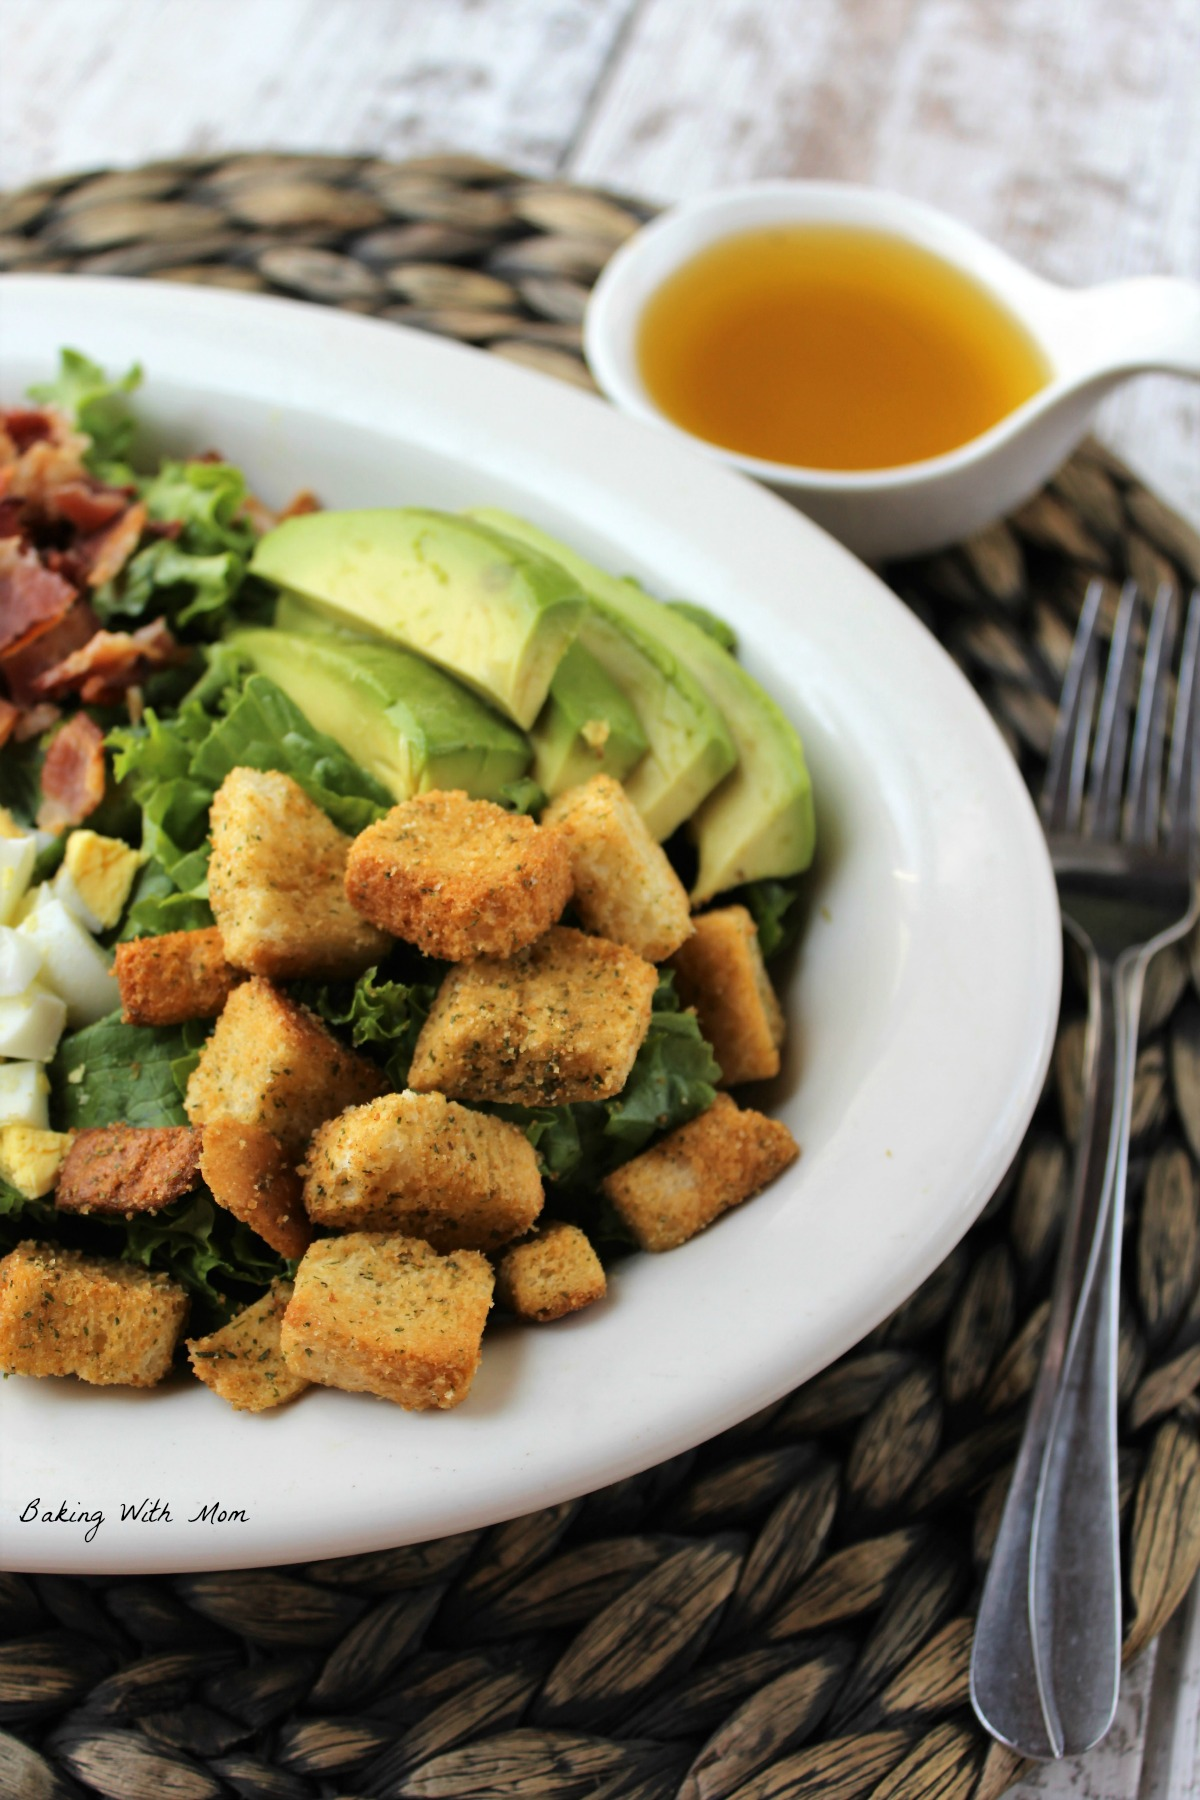 Lettuce salad on a white plate with a fork laying besides. Croutons and avocado on top of salad